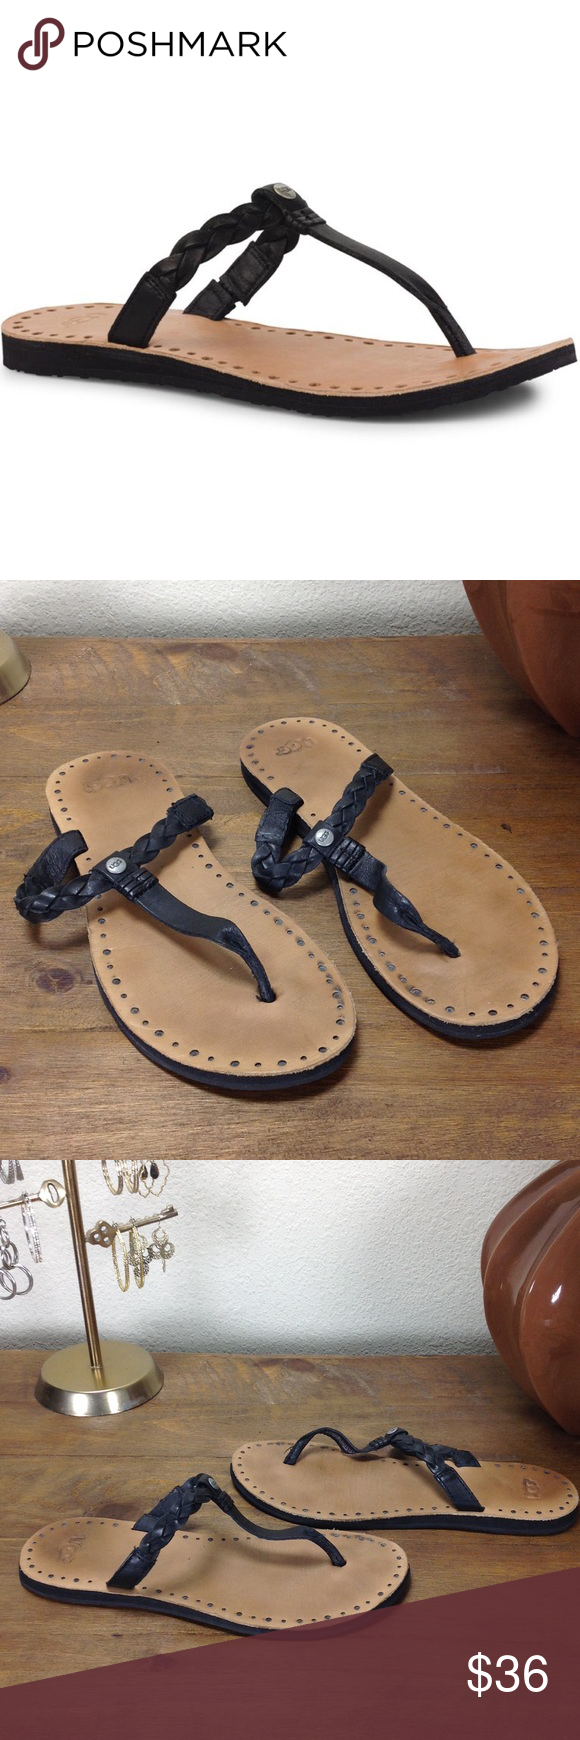 d321f16a22534 UGG Black Braided Leather Flip Flops Black braided leather flip flops with  tan leather soles with